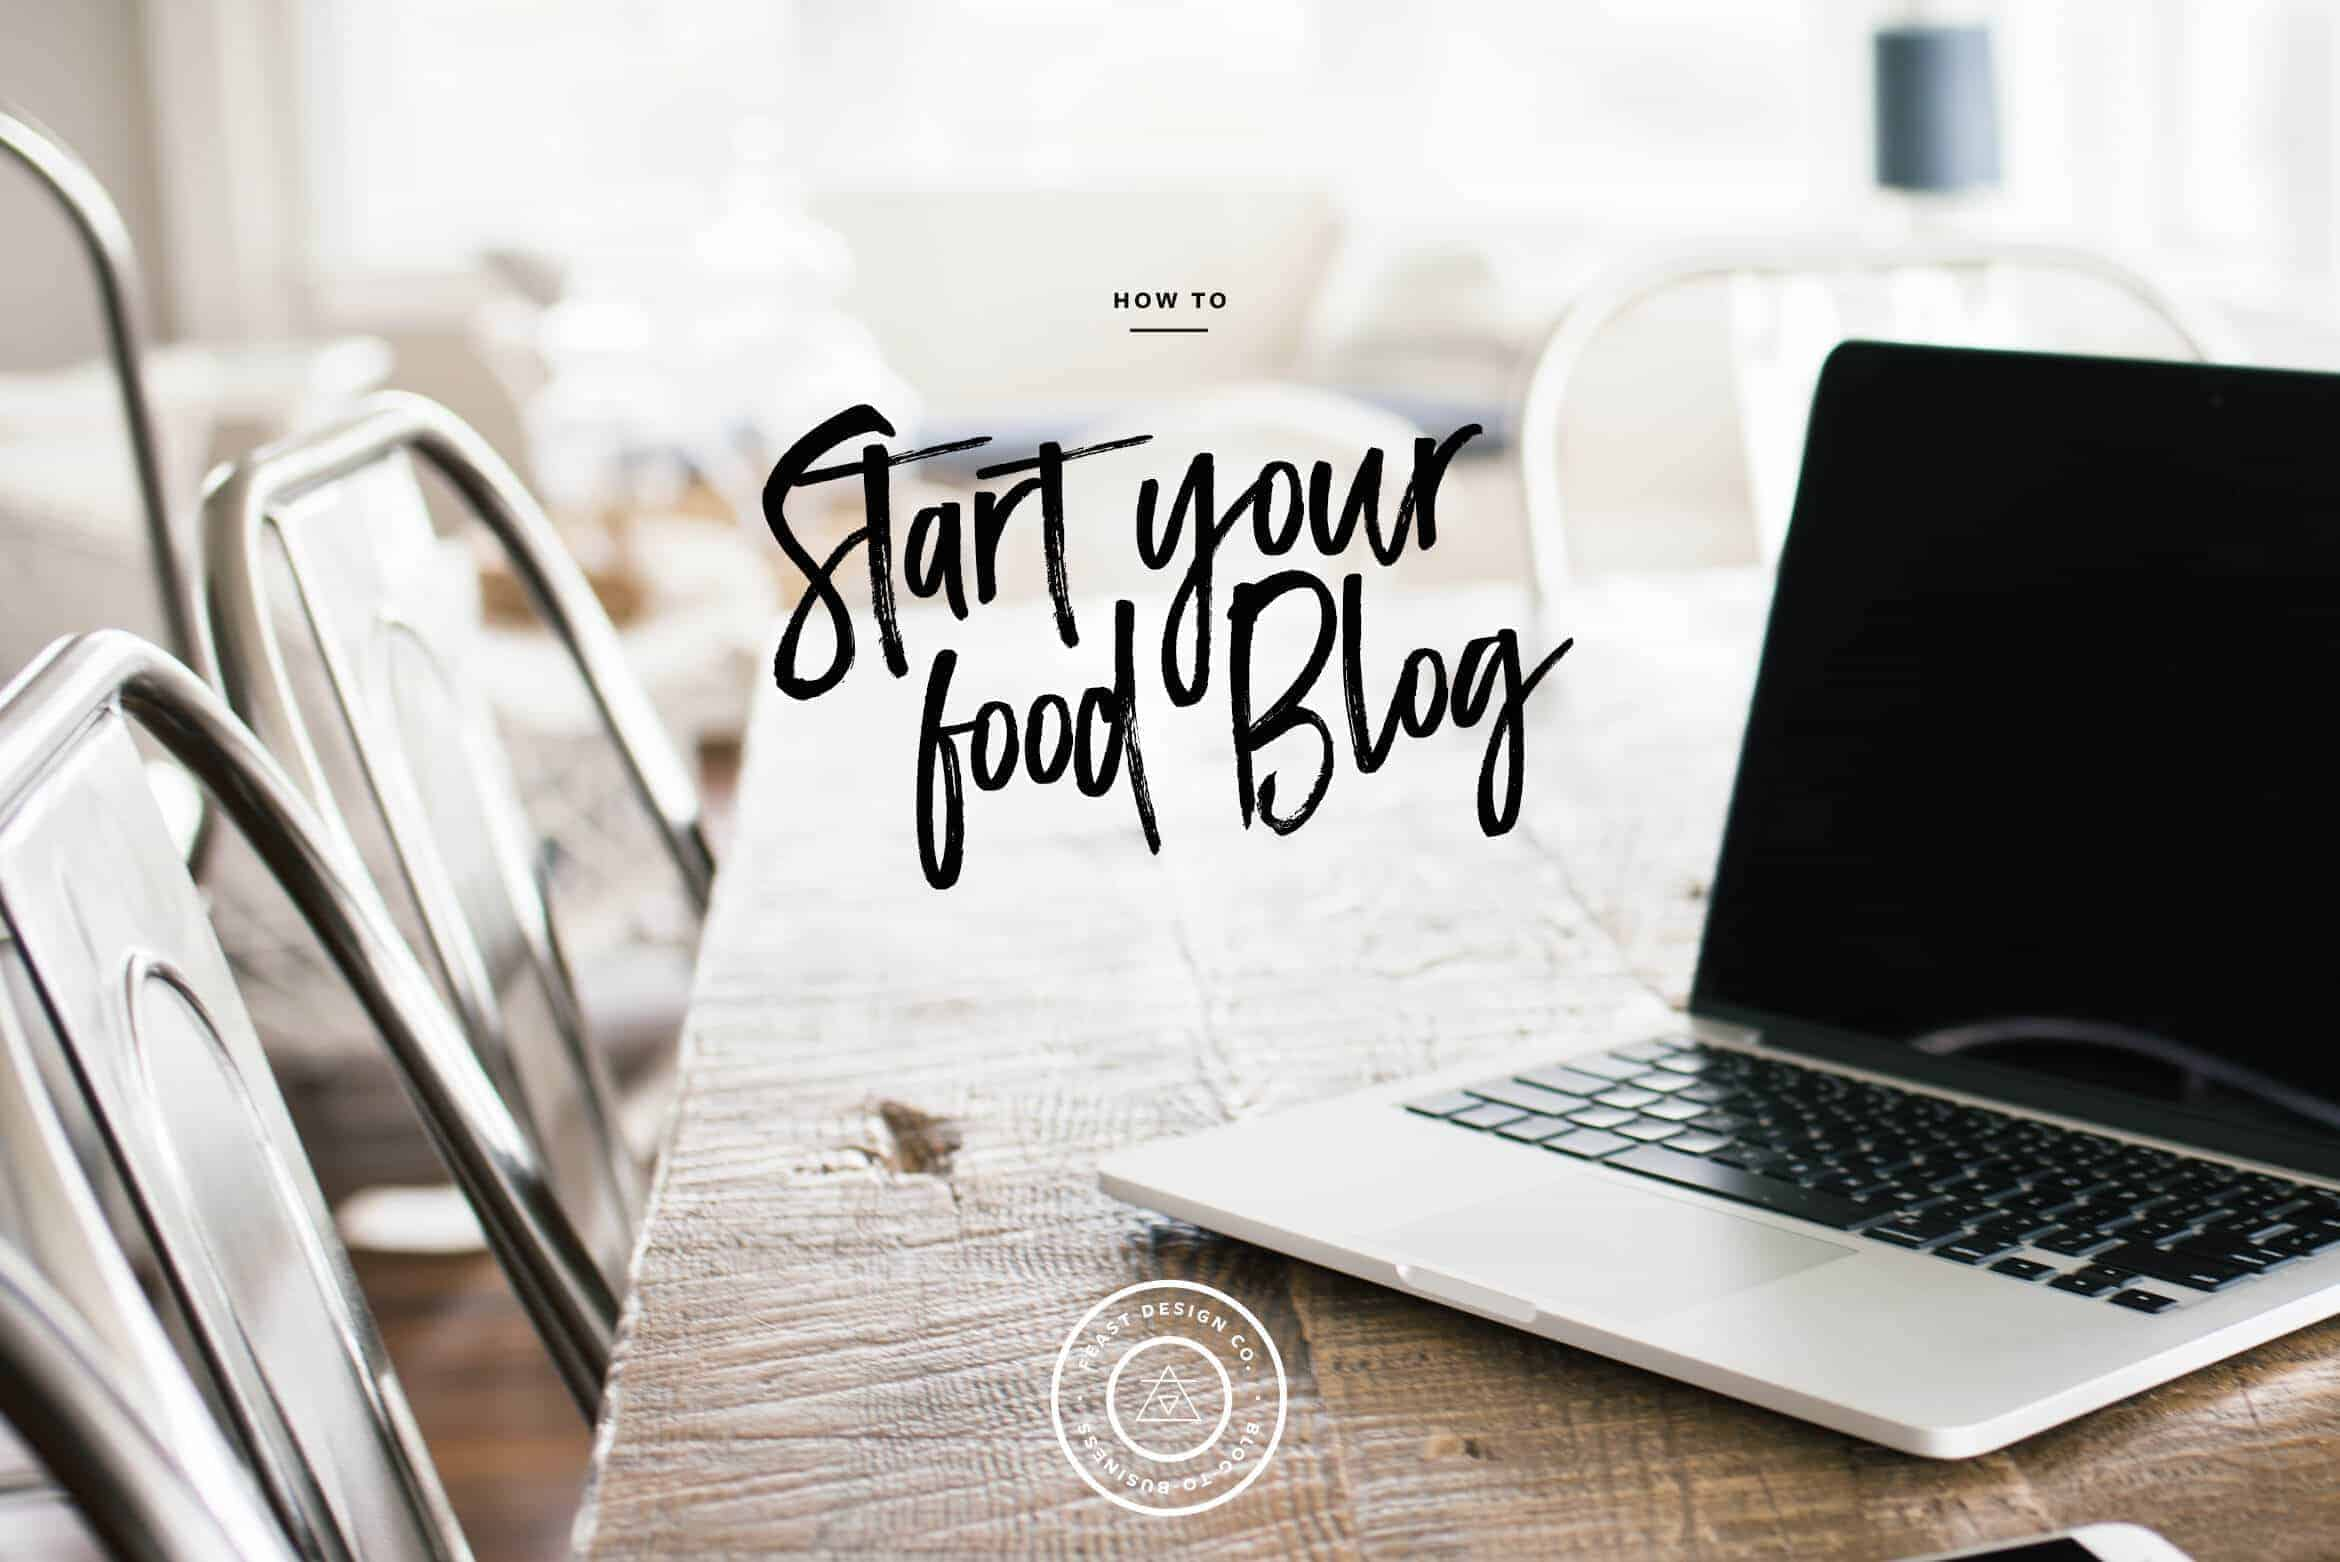 Use this checklist to start your food blog